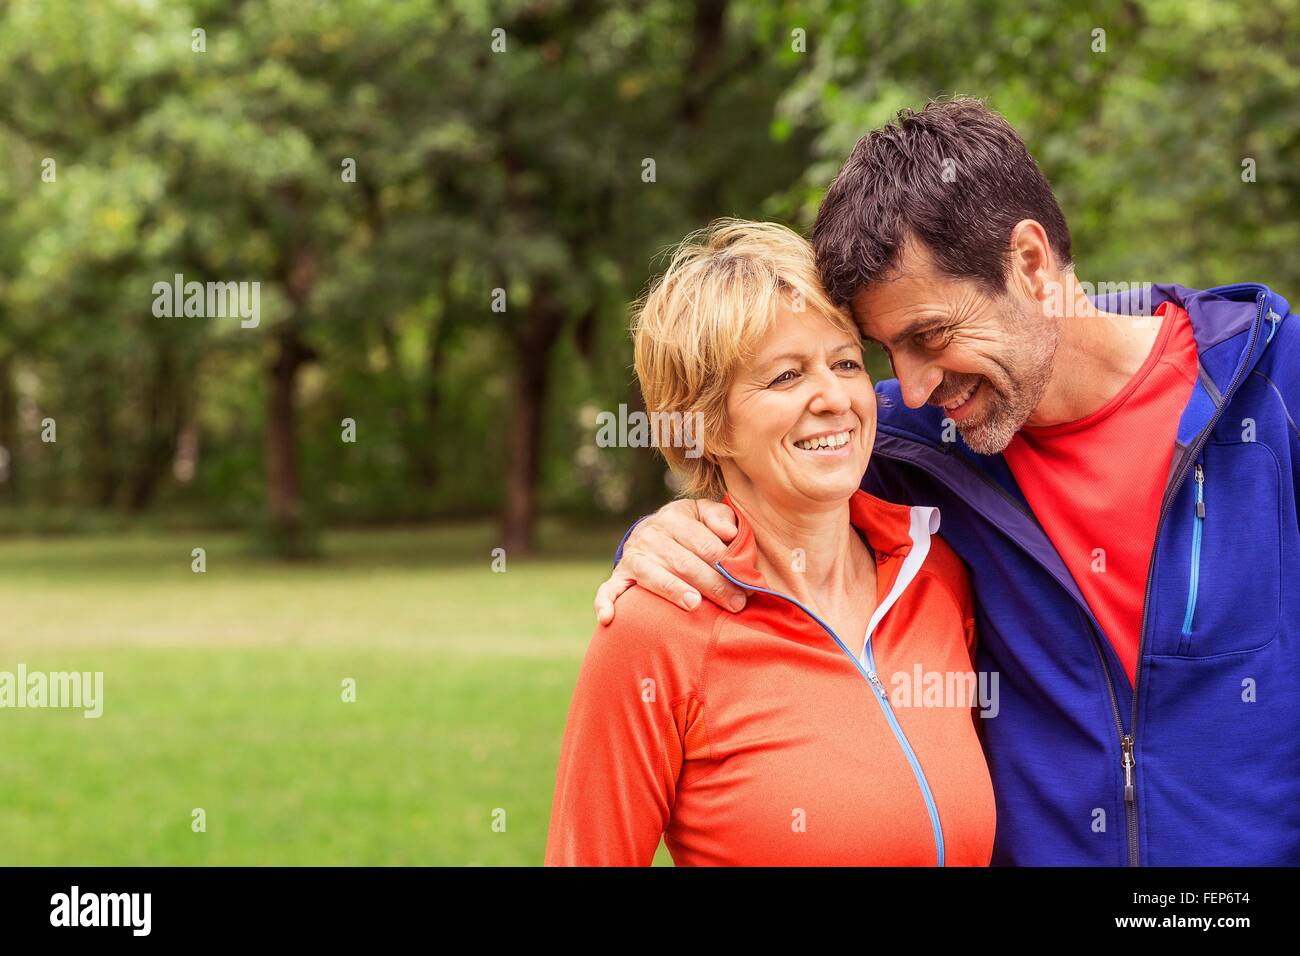 Couple wearing sports clothing, outdoors, hugging, smiling - Stock Image